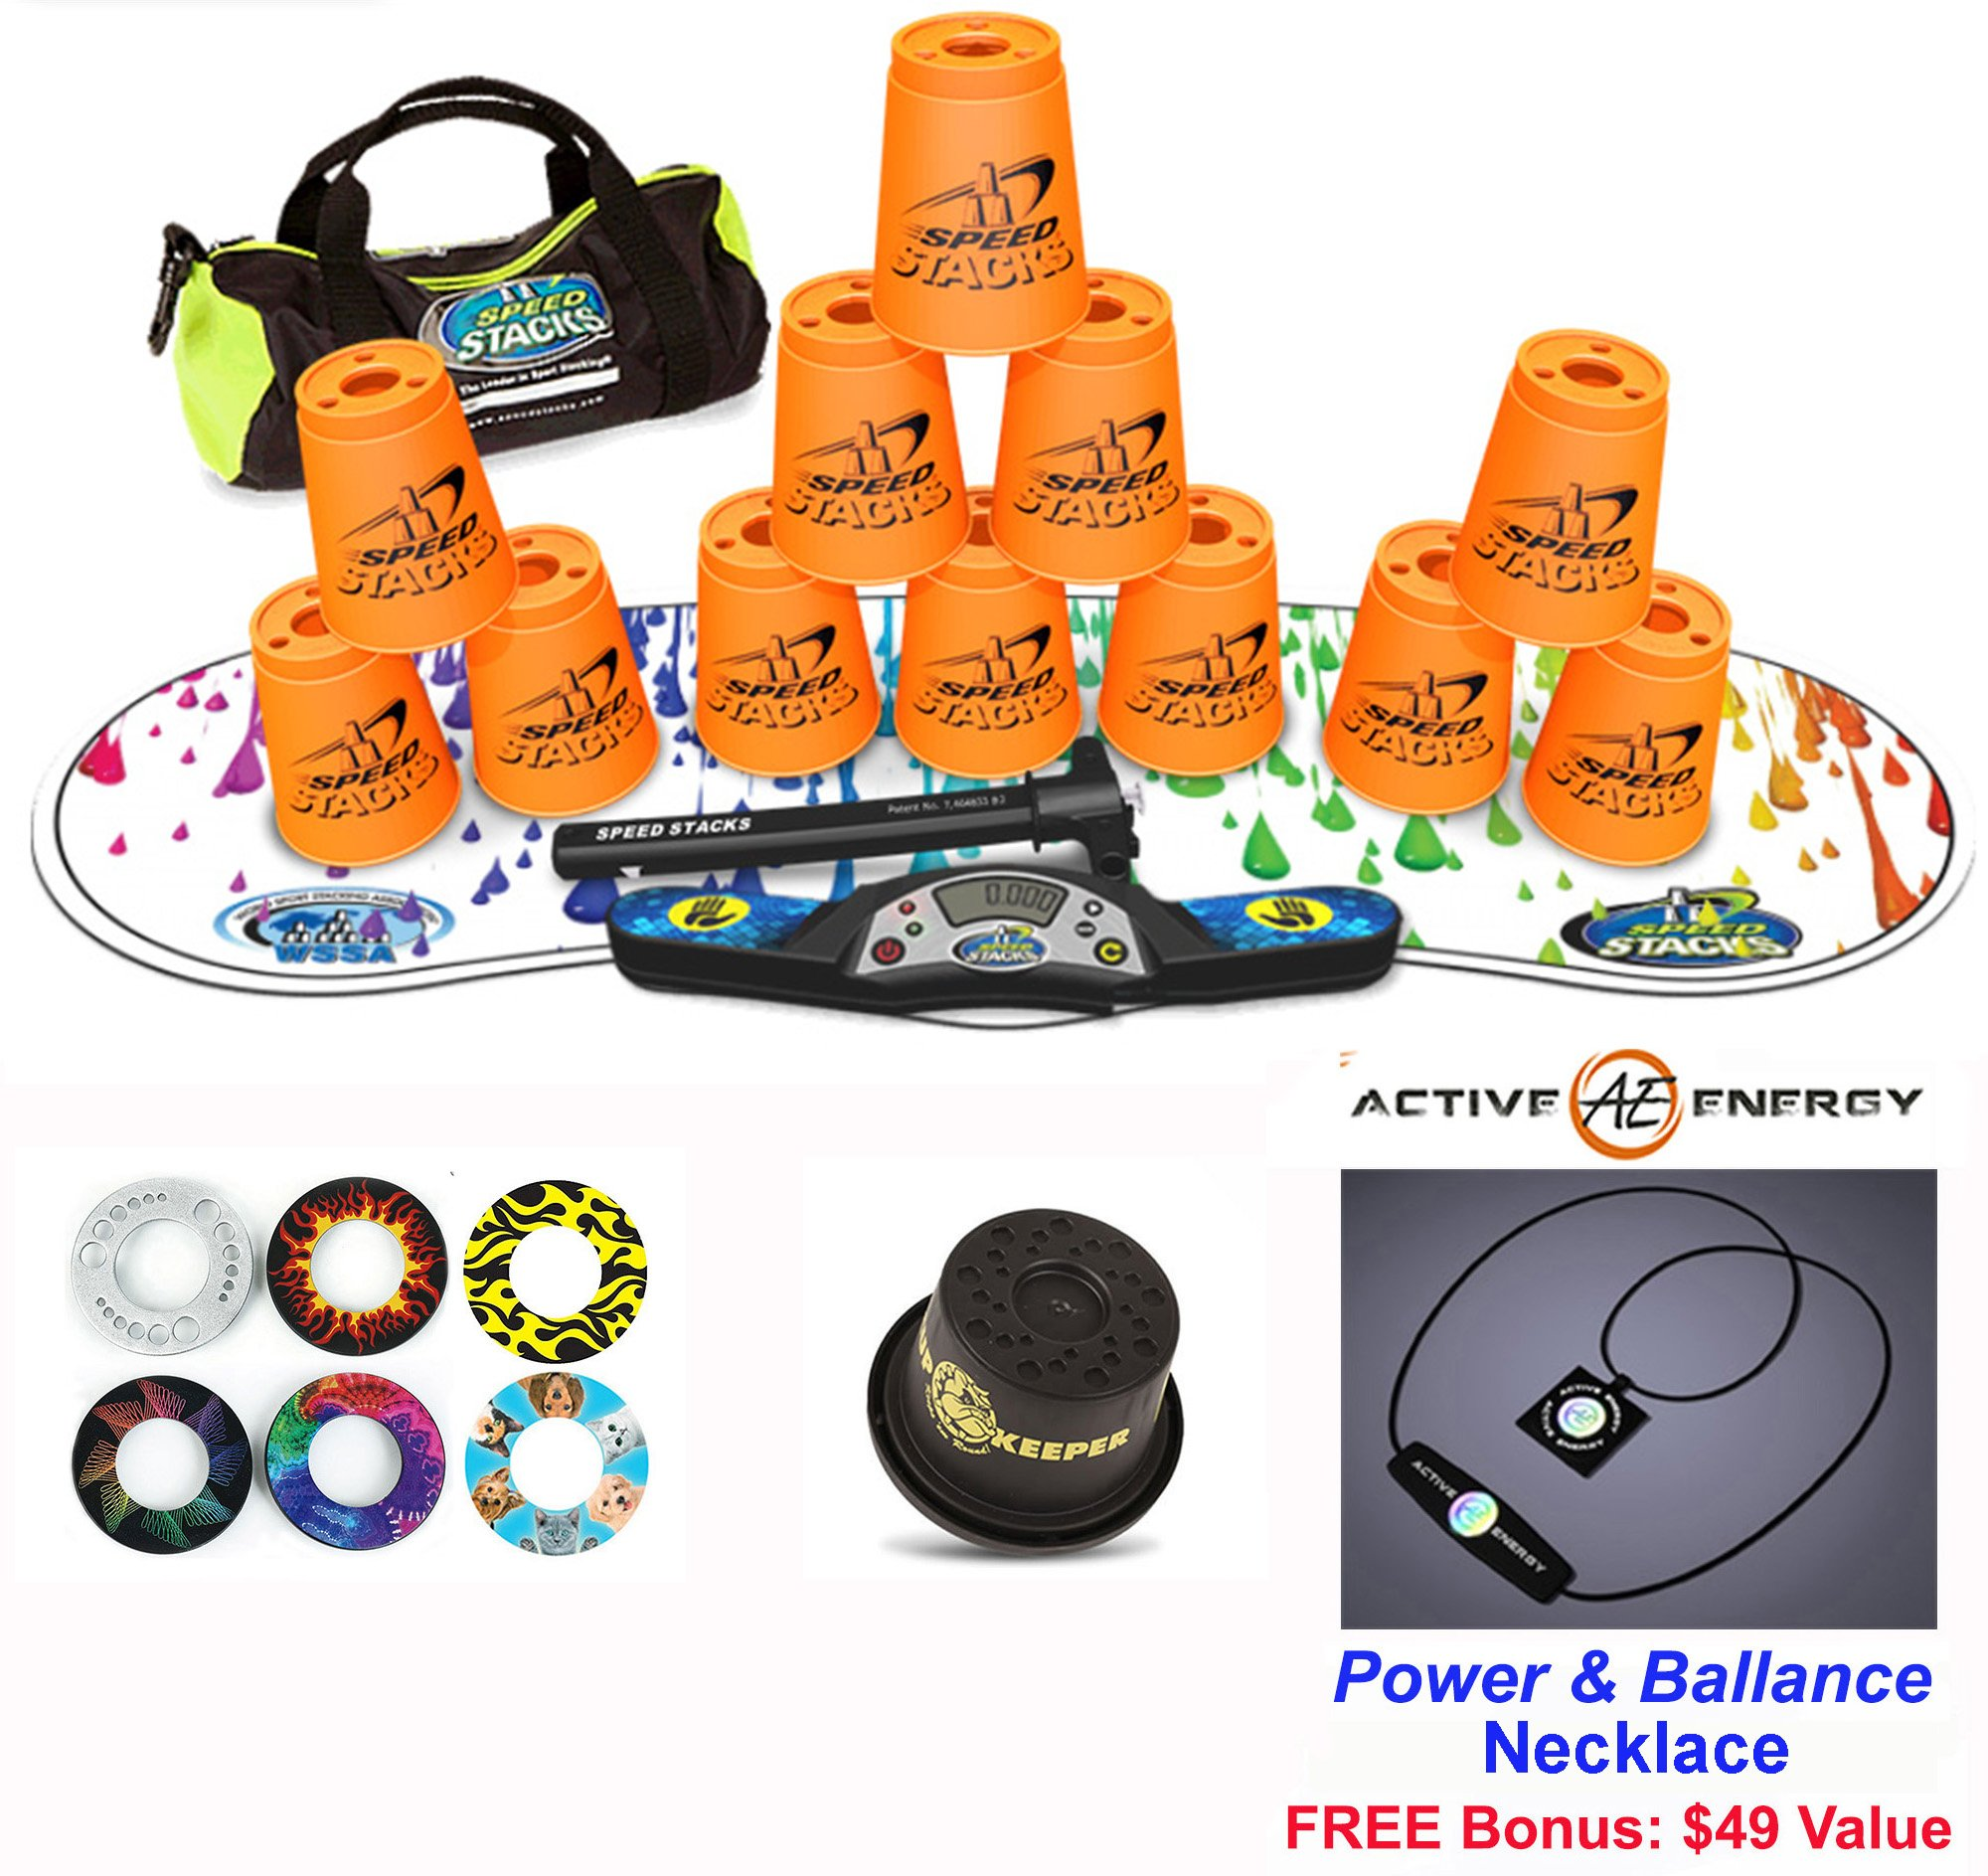 Speed Stacks Combo Set ''The Works'': 12 NEON ORANGE 4'' Cups, RAINBOW DROP Gen 3 Mat, G4 Pro Timer, Cup Keeper, Stem, Gear Bag + Active Energy Necklace